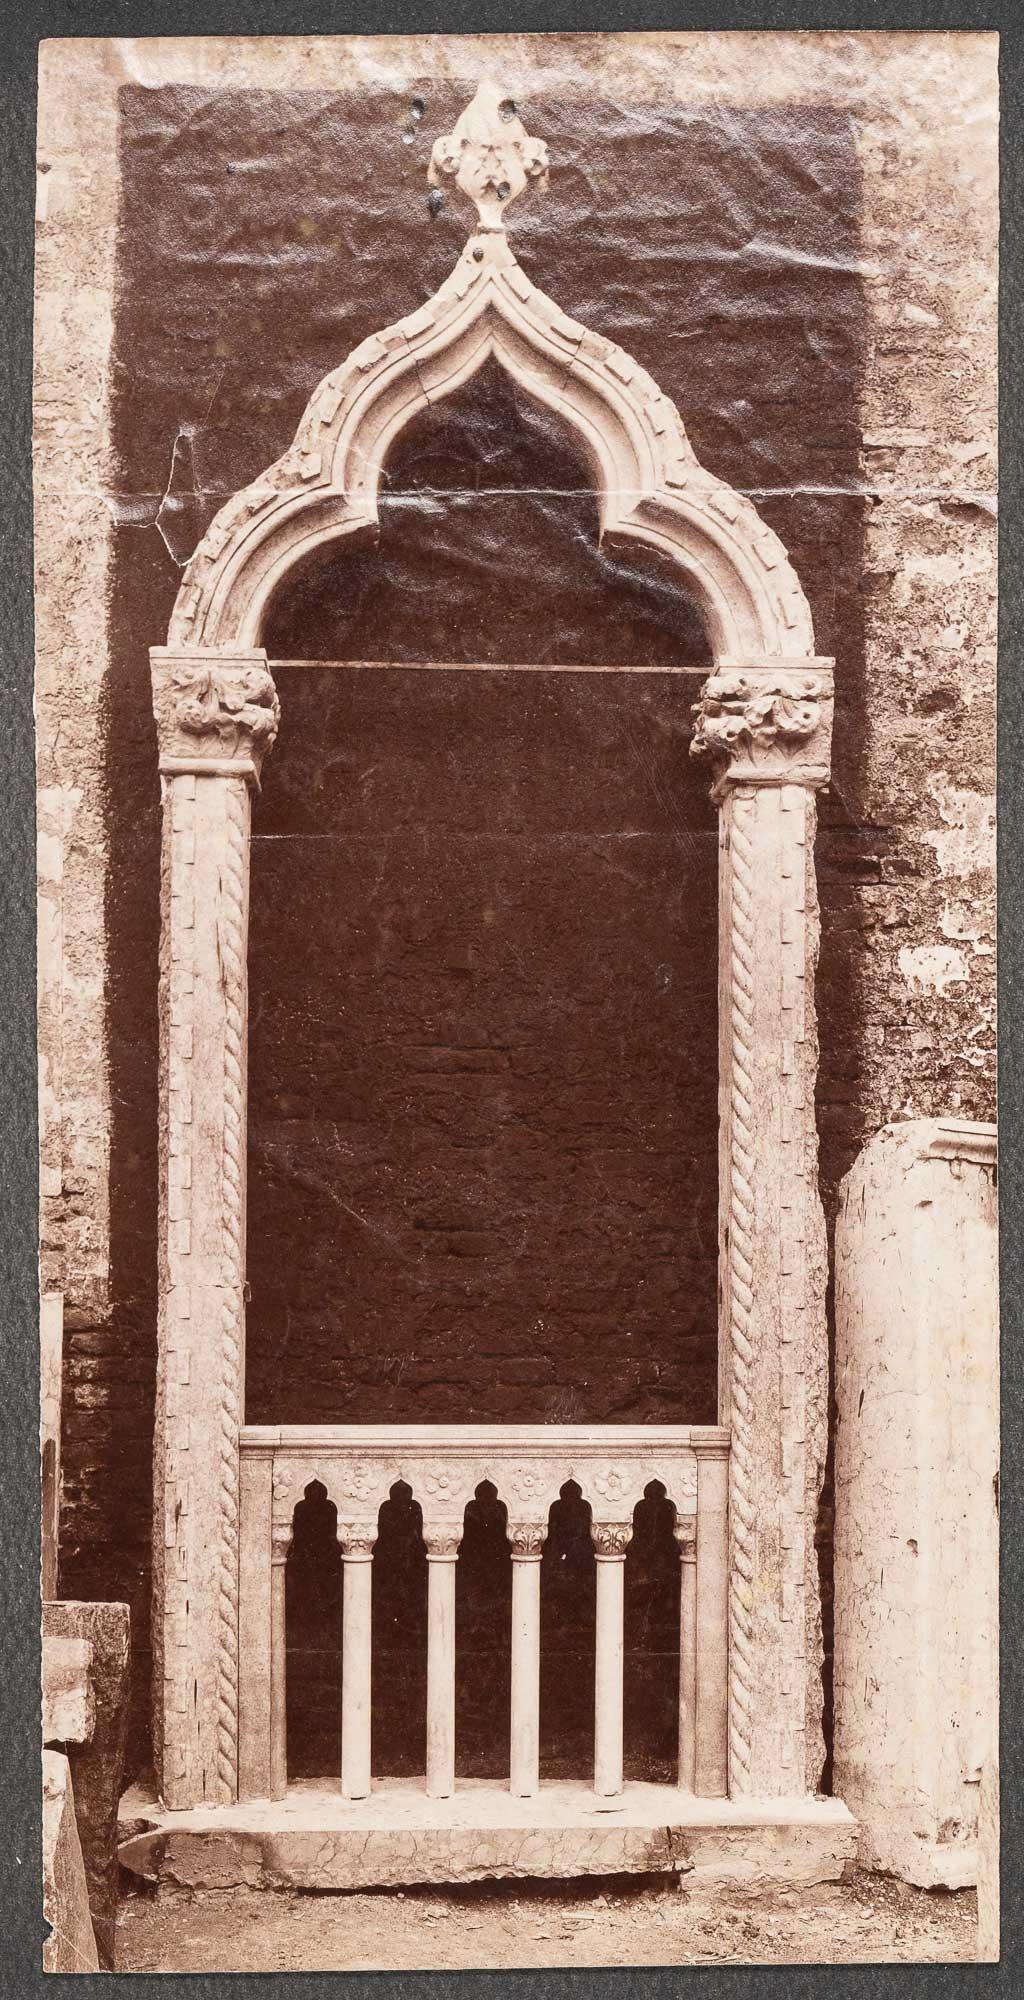 Photograph of a Venetian window that Isabella Stewart Gardner purchased from the antique dealer Francesco Dorigo